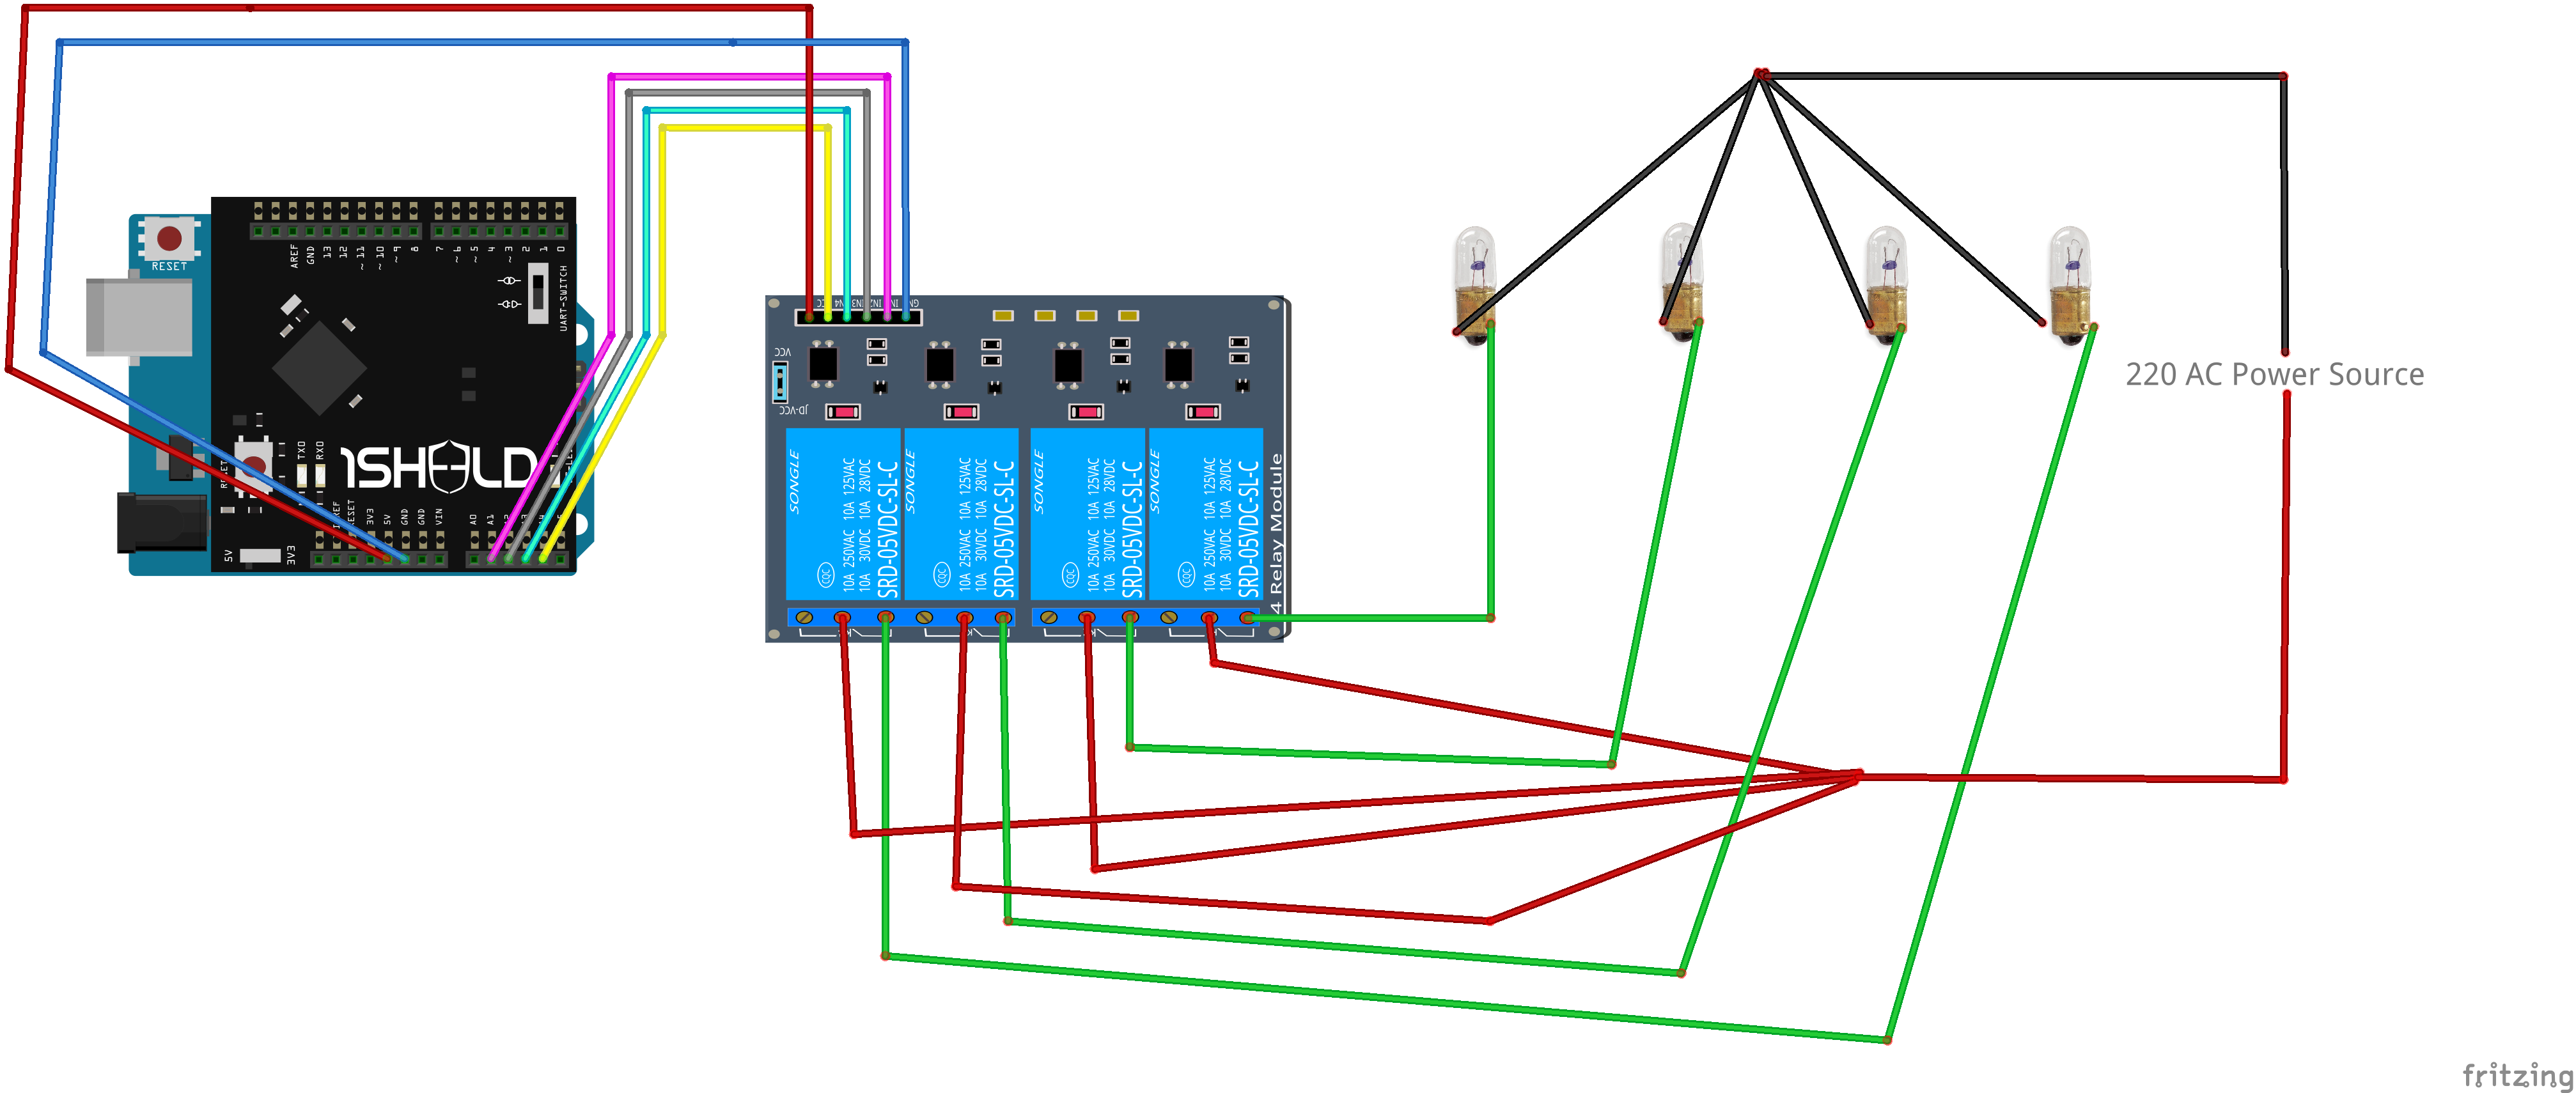 Relay connections zs3g2nkdyk